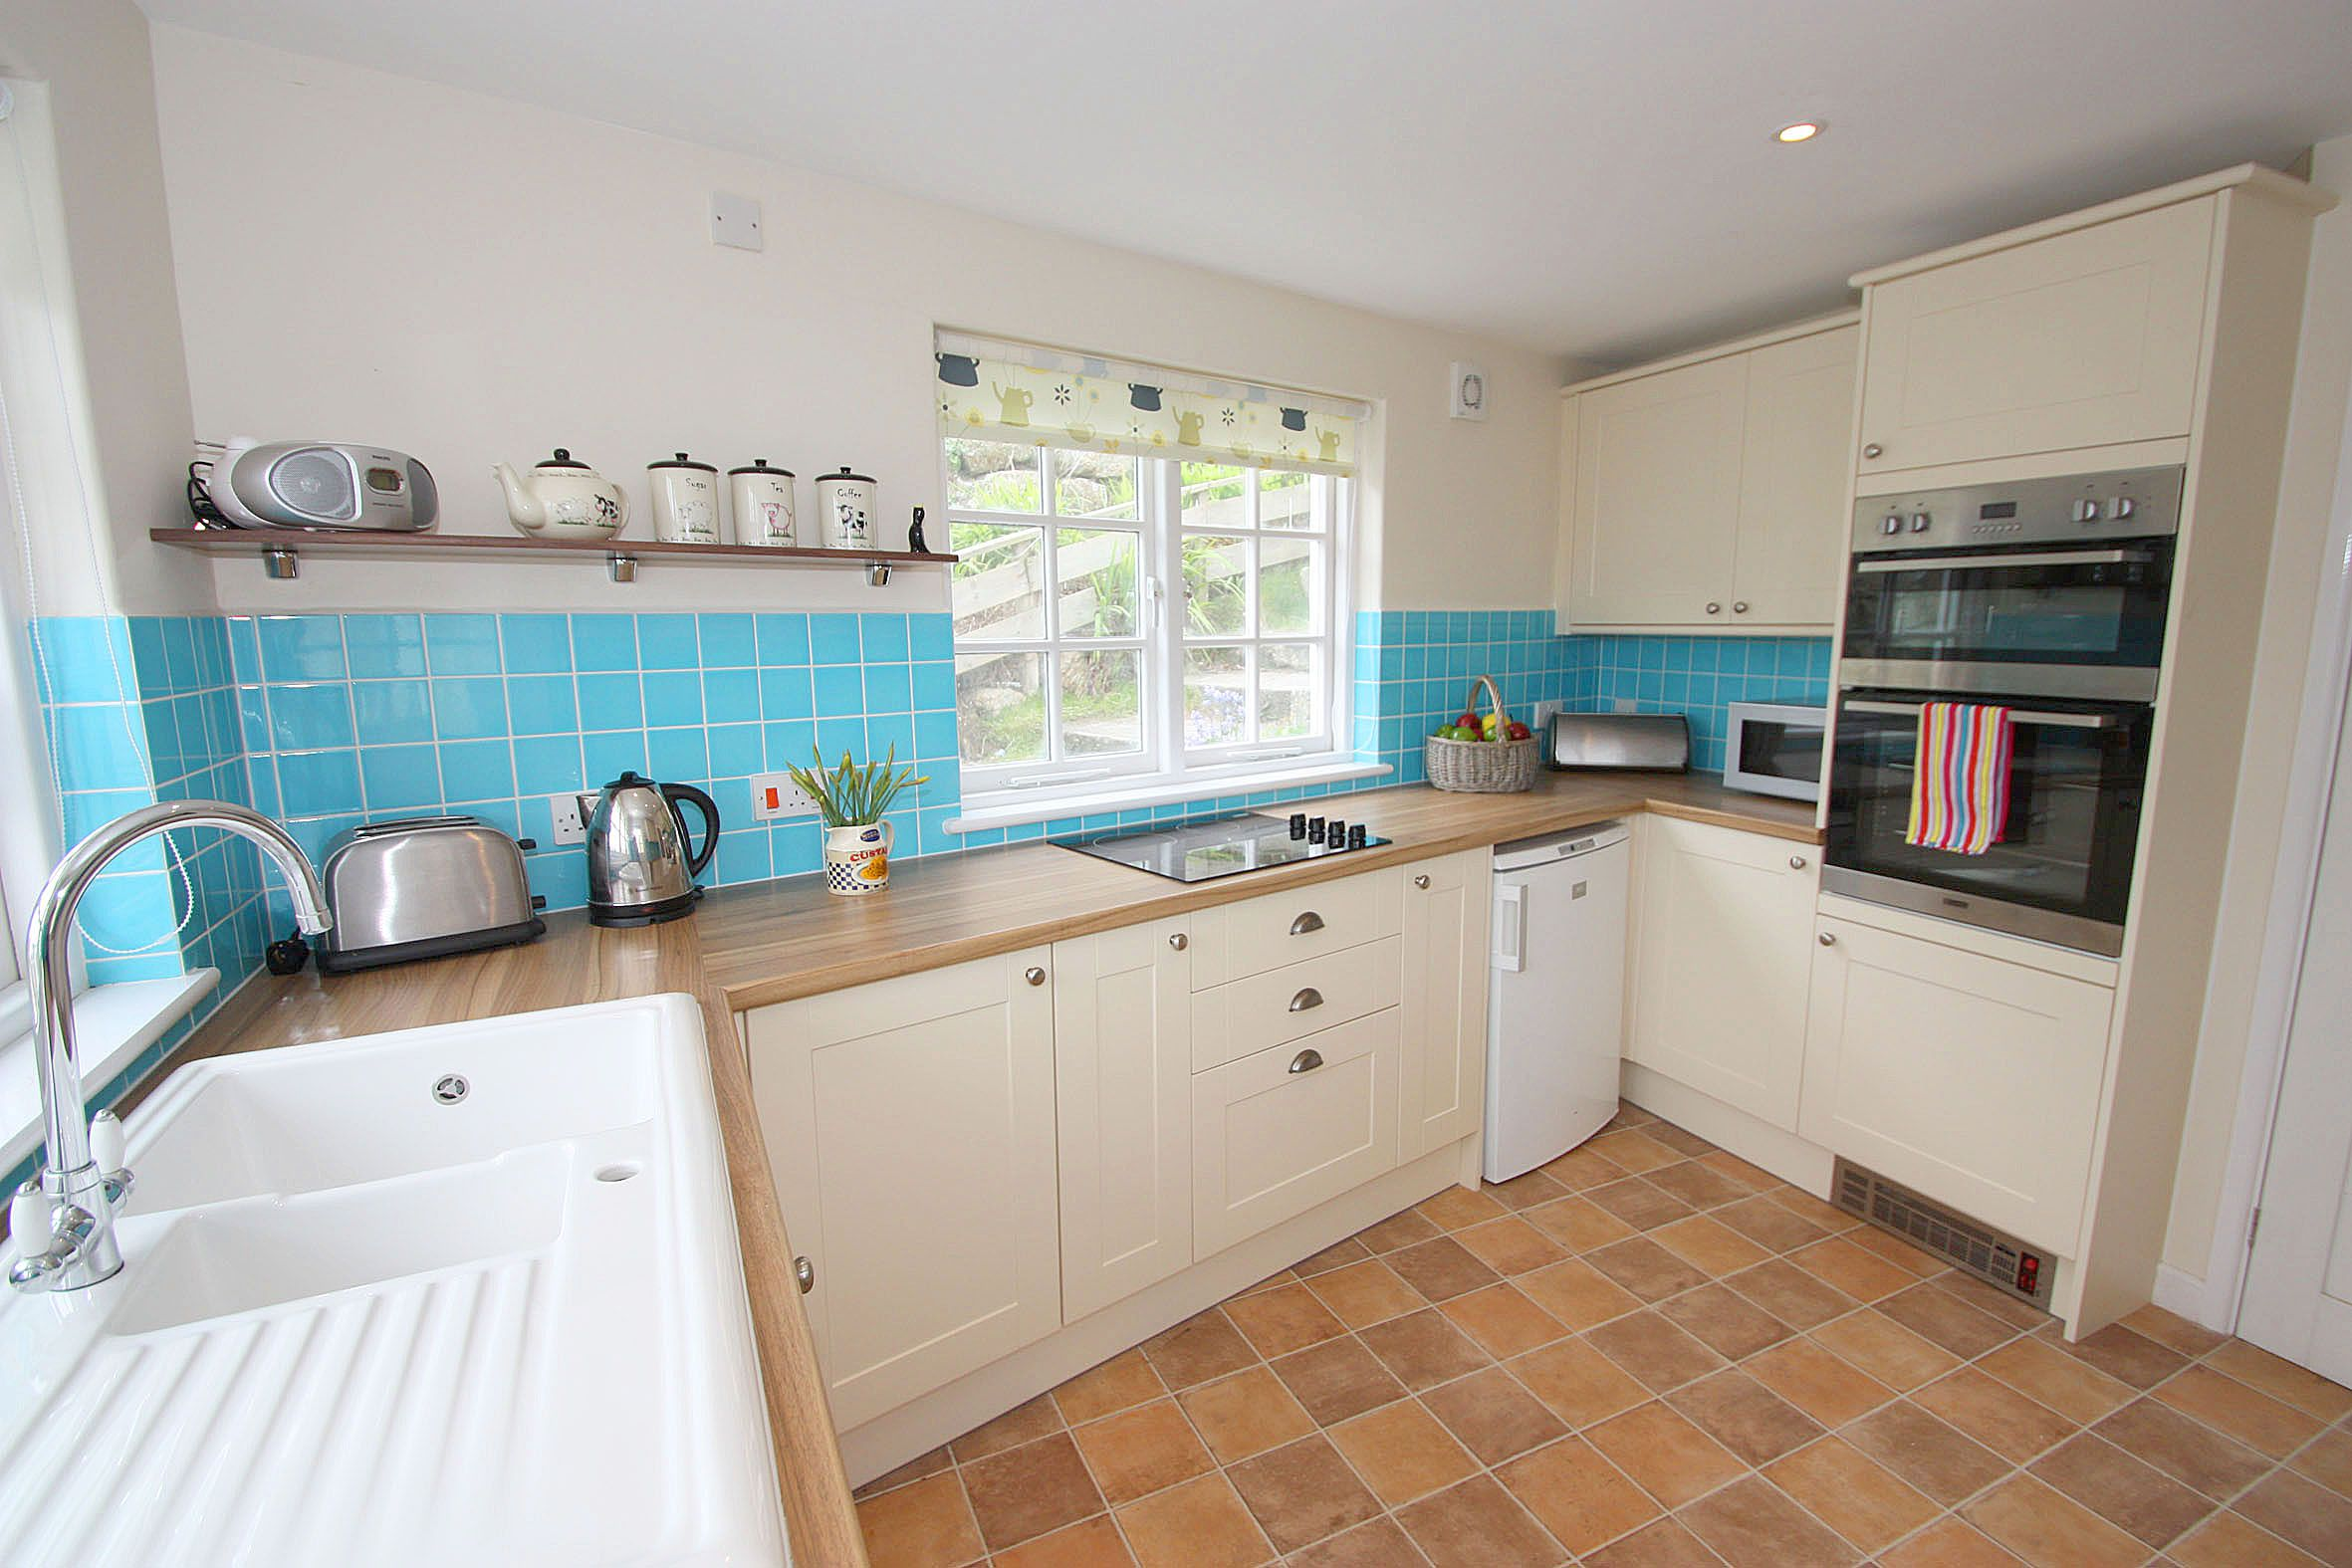 A prominent landmark in the village having previously been a tea room, Myrtle Cottage now offers flexible accommodation for six guests in four bedrooms. From £463 per week.  http://www.cornishcottageholidays.co.uk/html/property_detail.php?pid=1204